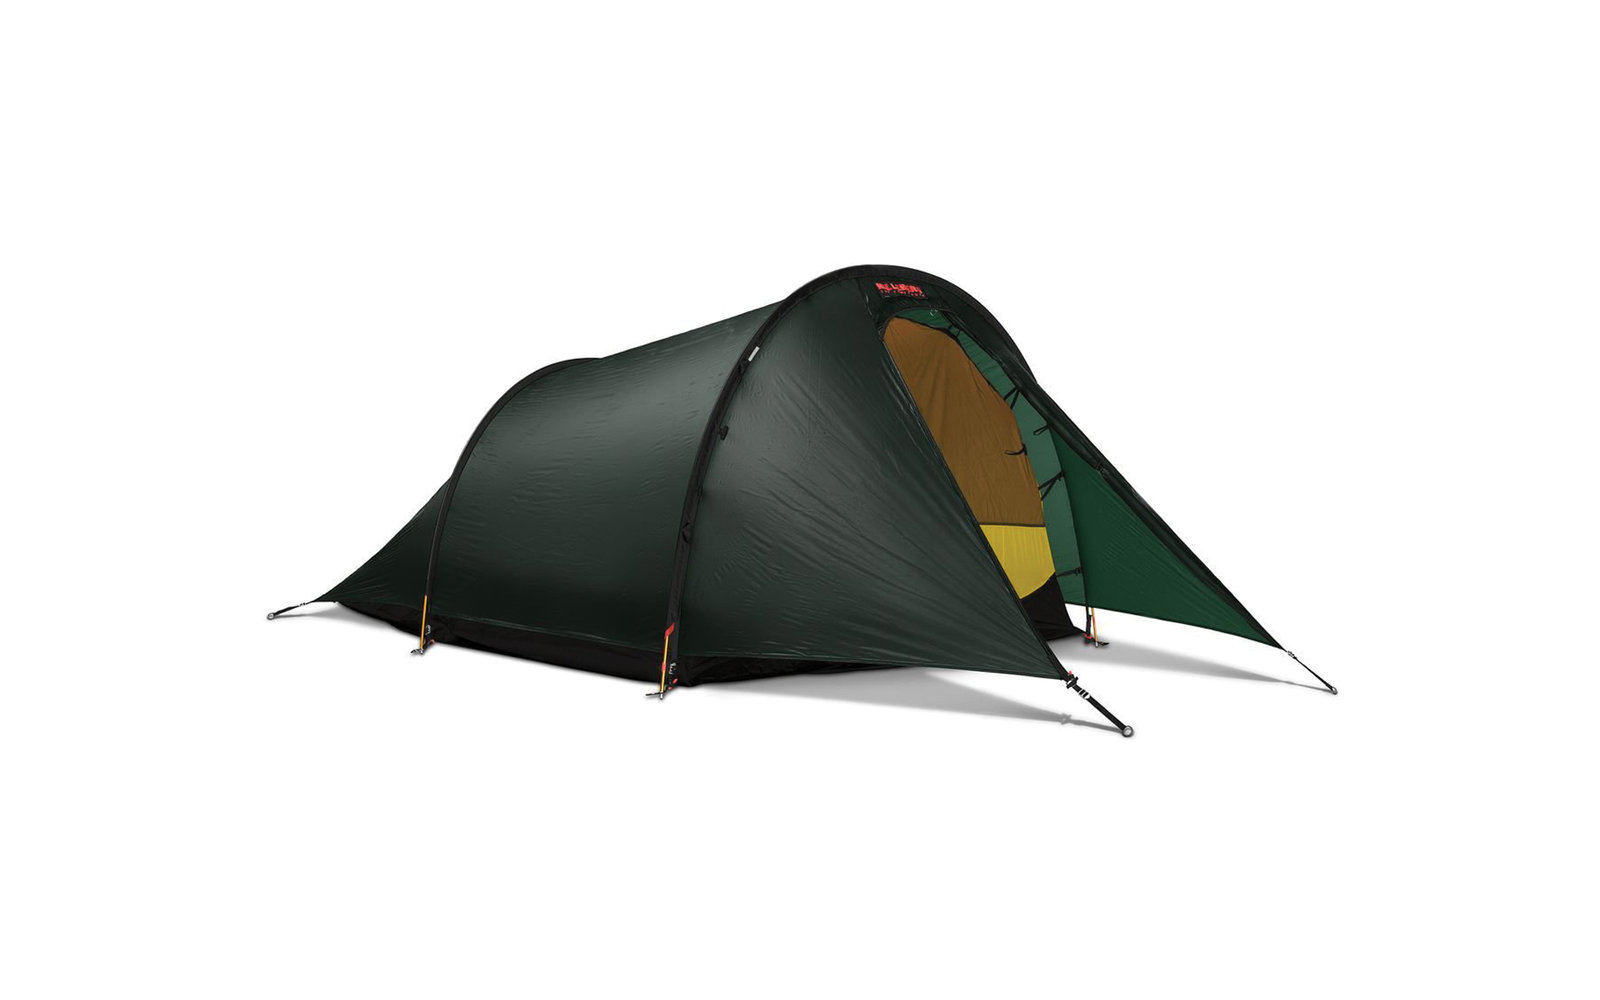 Hilleberg Anjan 2 Tent  sc 1 st  Travel + Leisure & Best Camping Tents for Families Hikers and More | Travel + Leisure